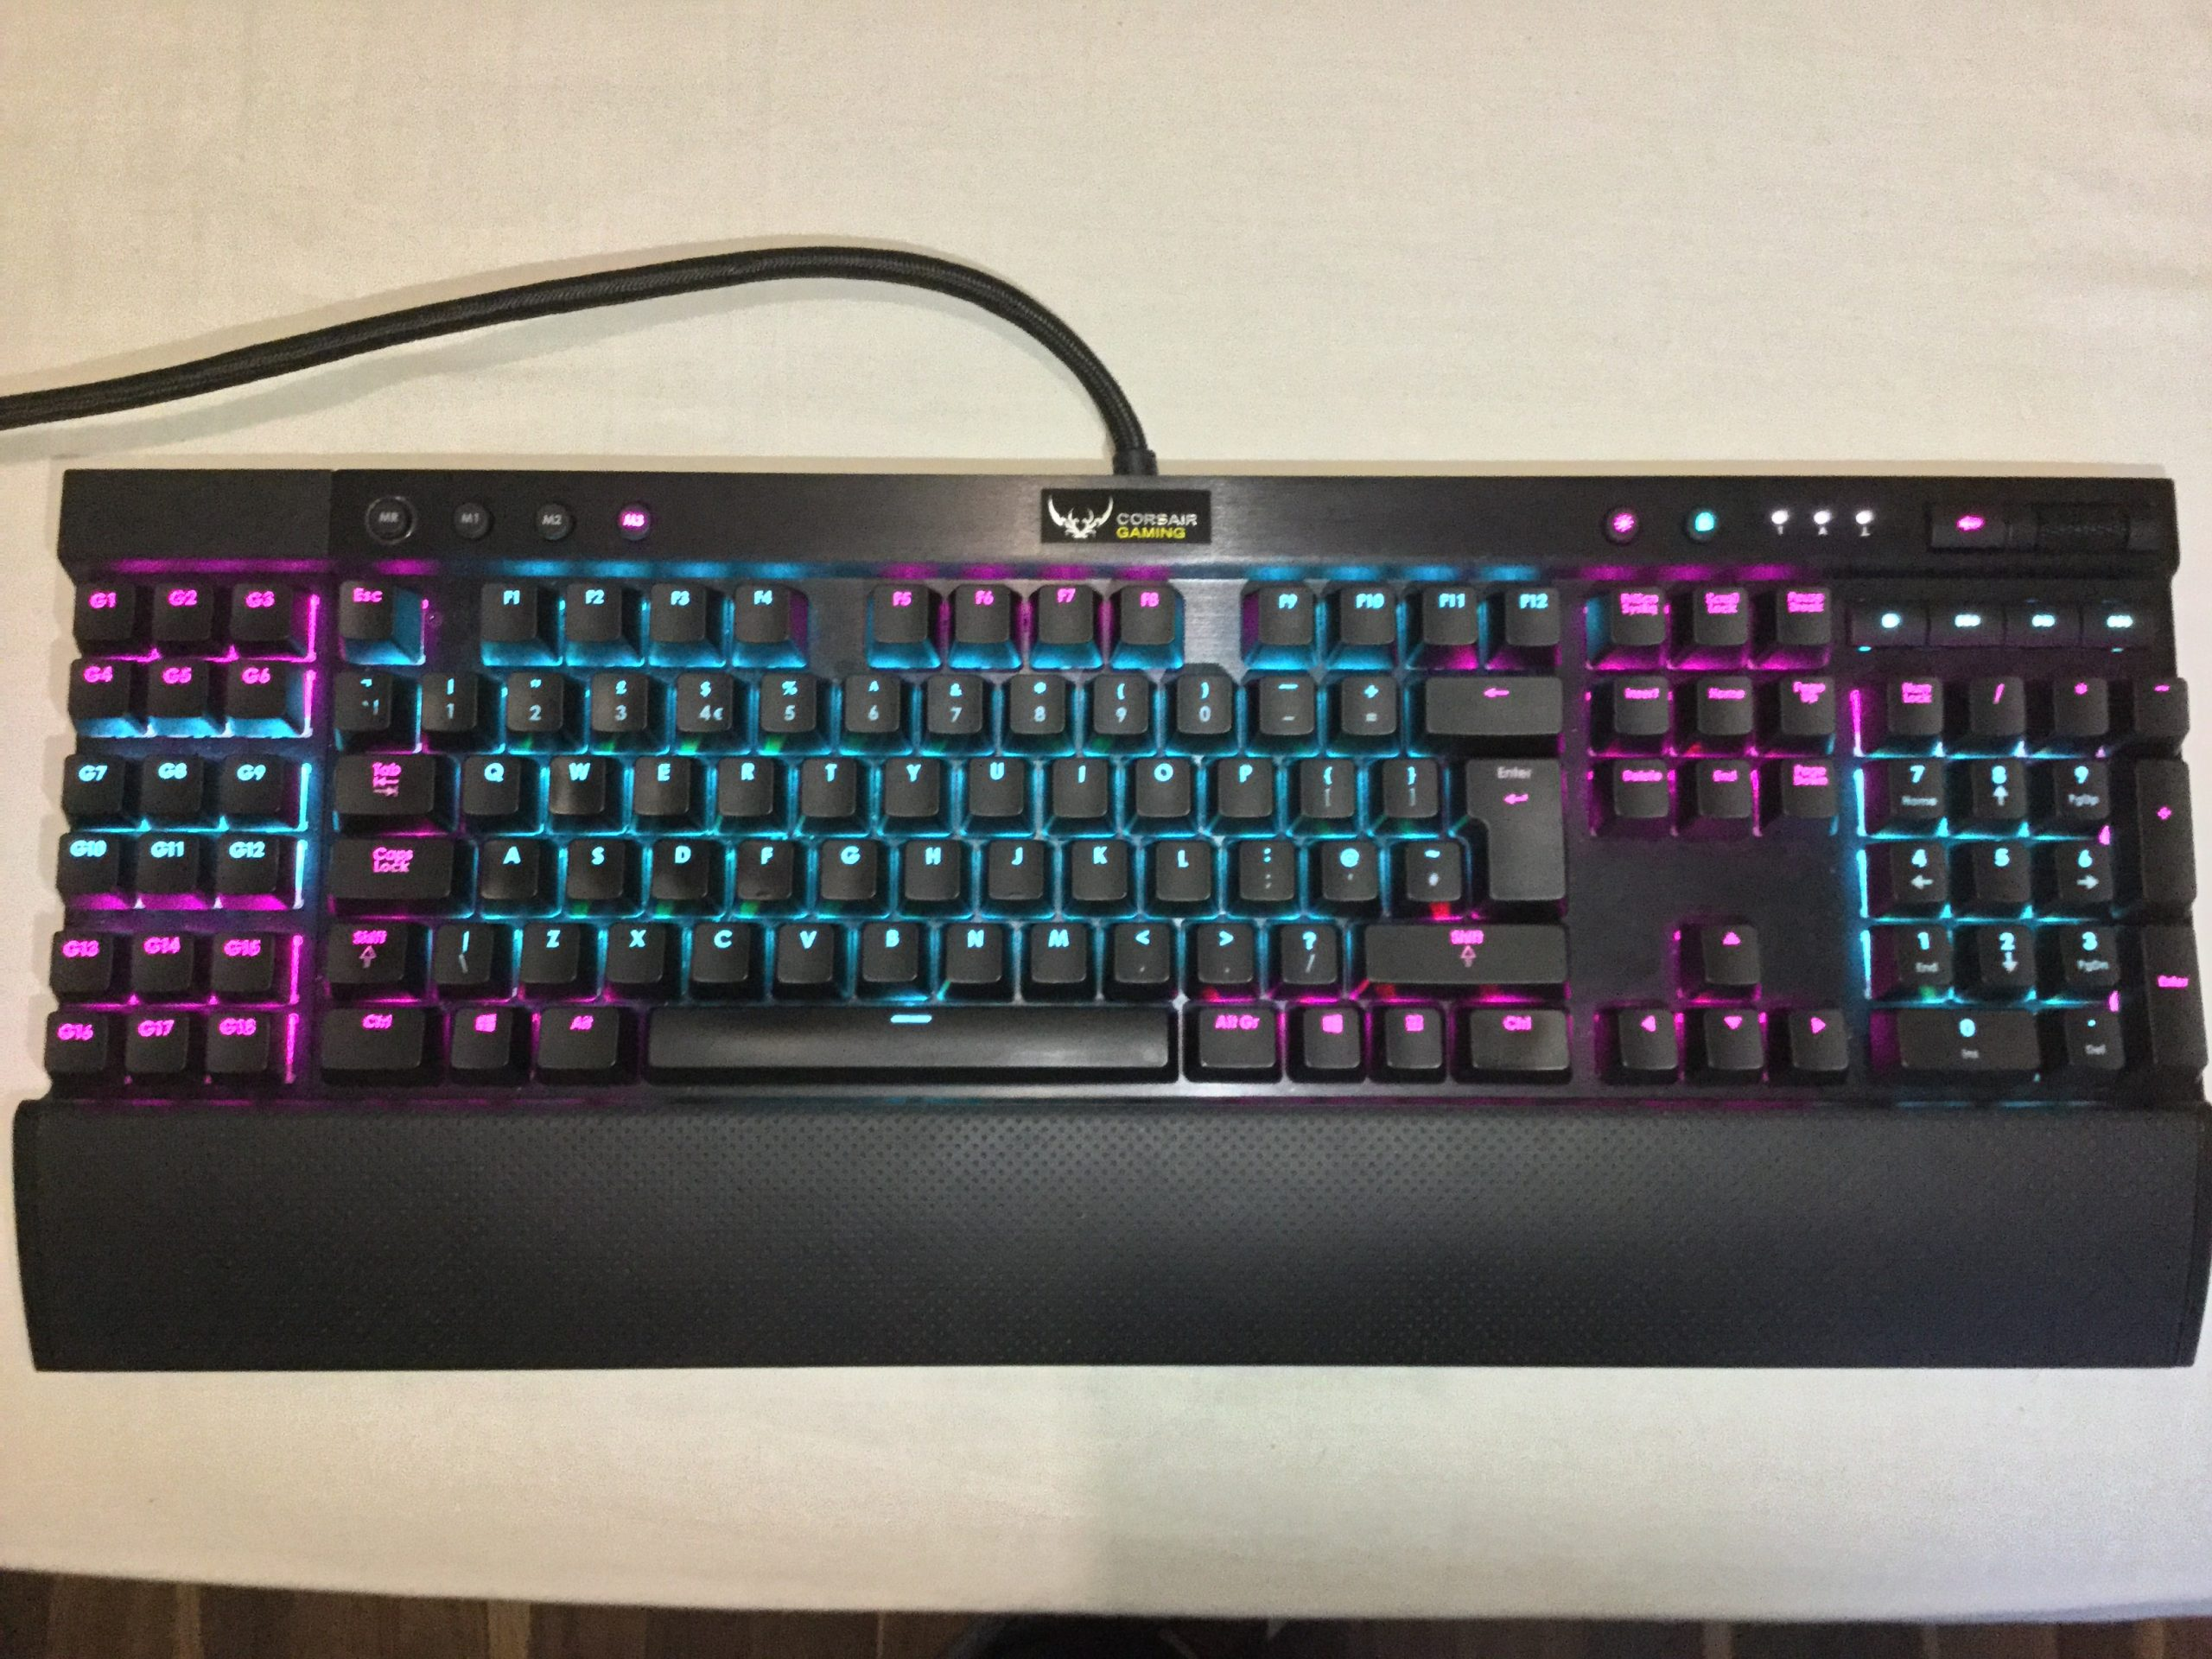 A Corsair K95 RGB with Cherry MX Brown switches.